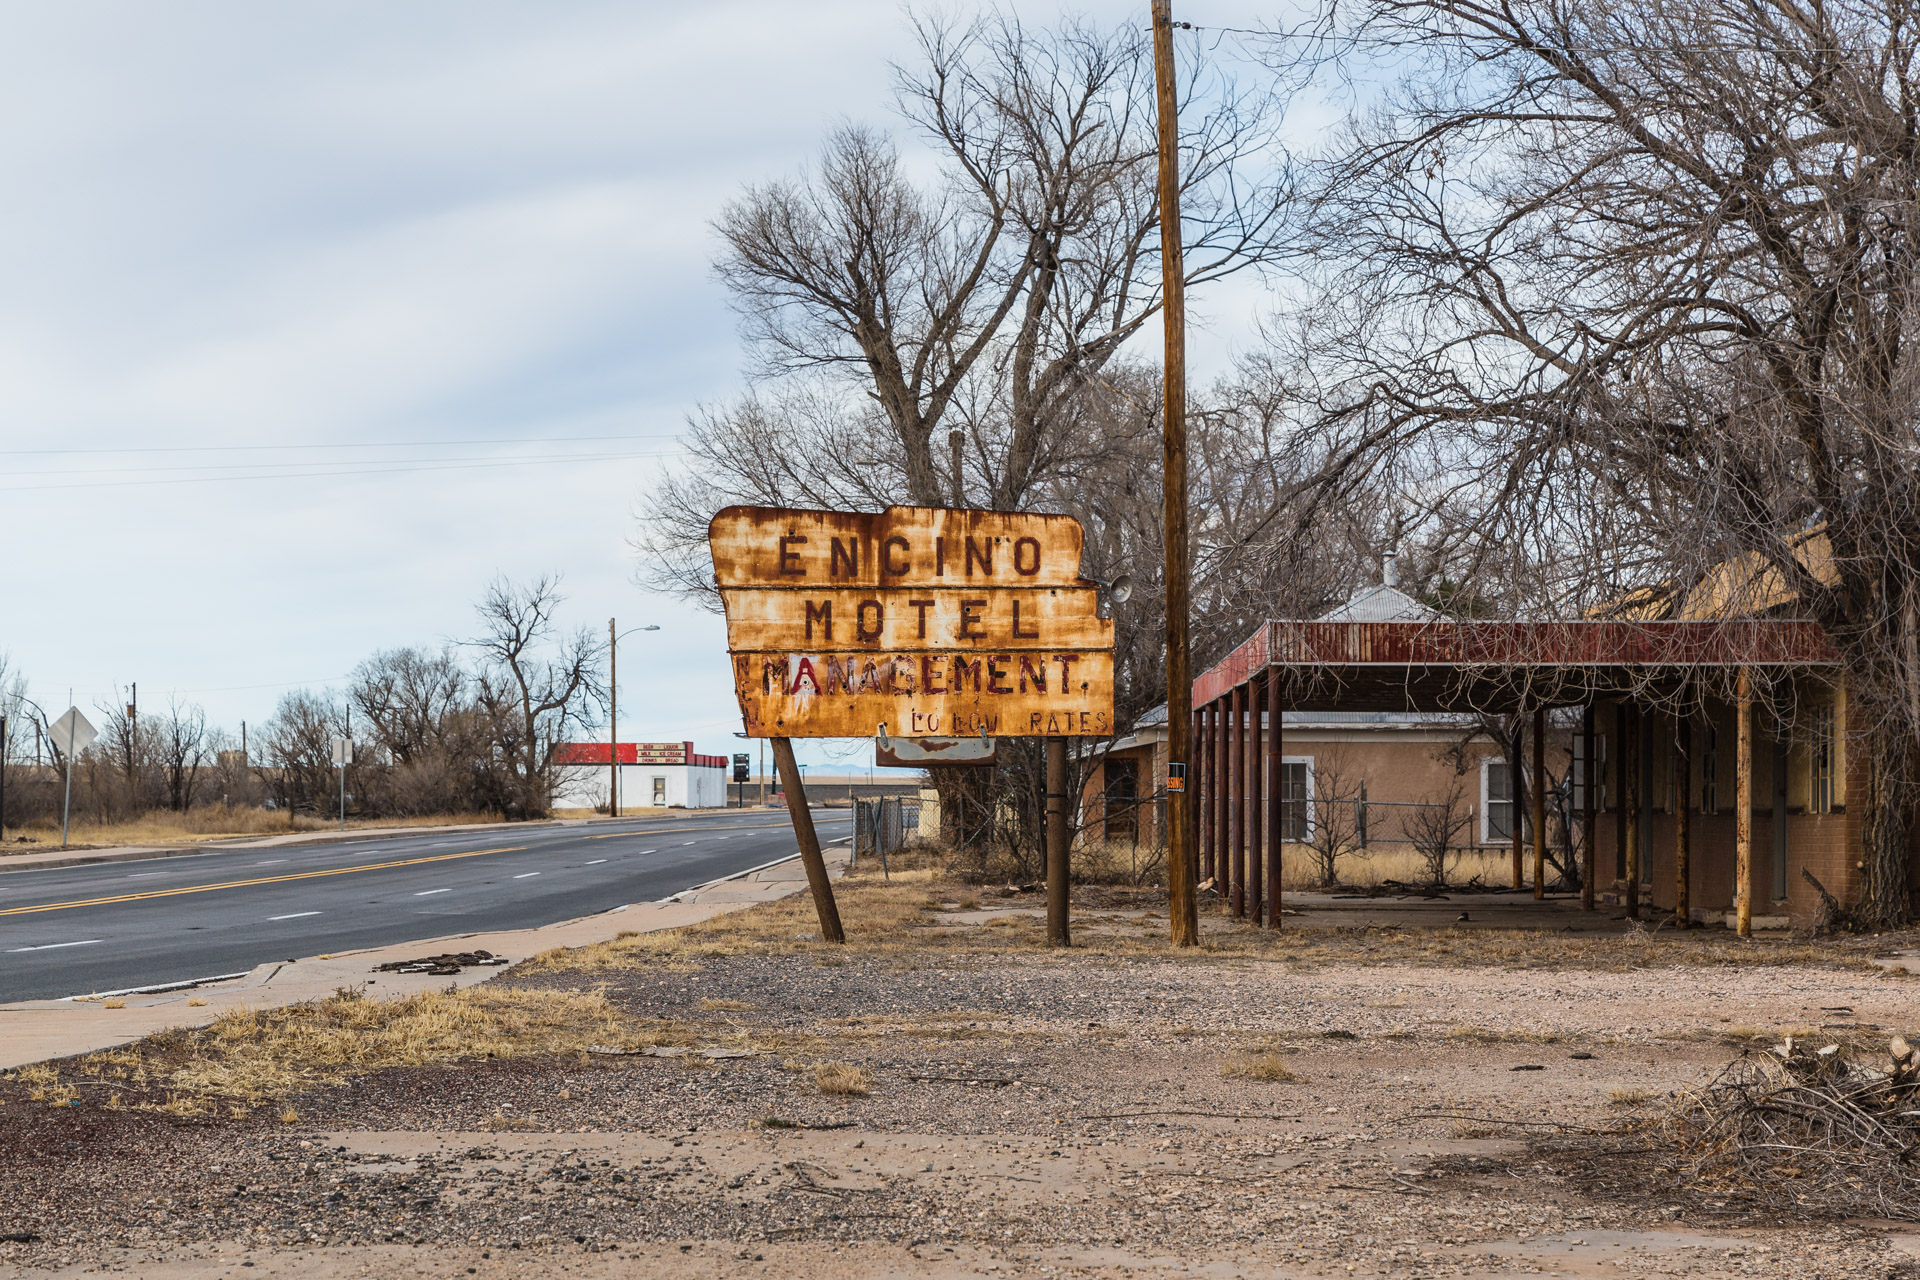 Encino, New Mexico - Encino Motel